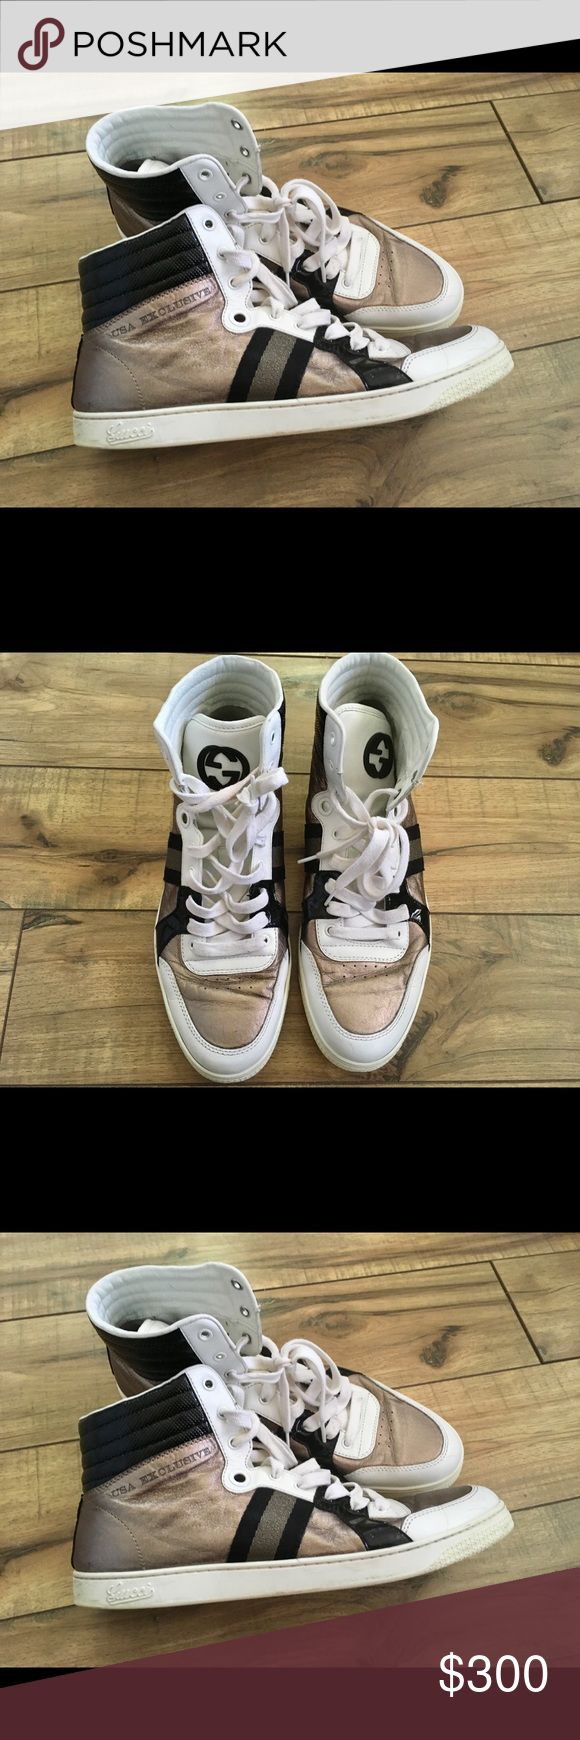 Gucci USA Exclusive Metallic Leather High Top 10 Gucci USA Exclusive Metallic/Patten Leather High Top. Size 10 G. Fits 10.5 and 11. Pre Owned. No box. Crease on the front and signs of bottom wear. No trades or low ball offers. Gucci Shoes Sneakers